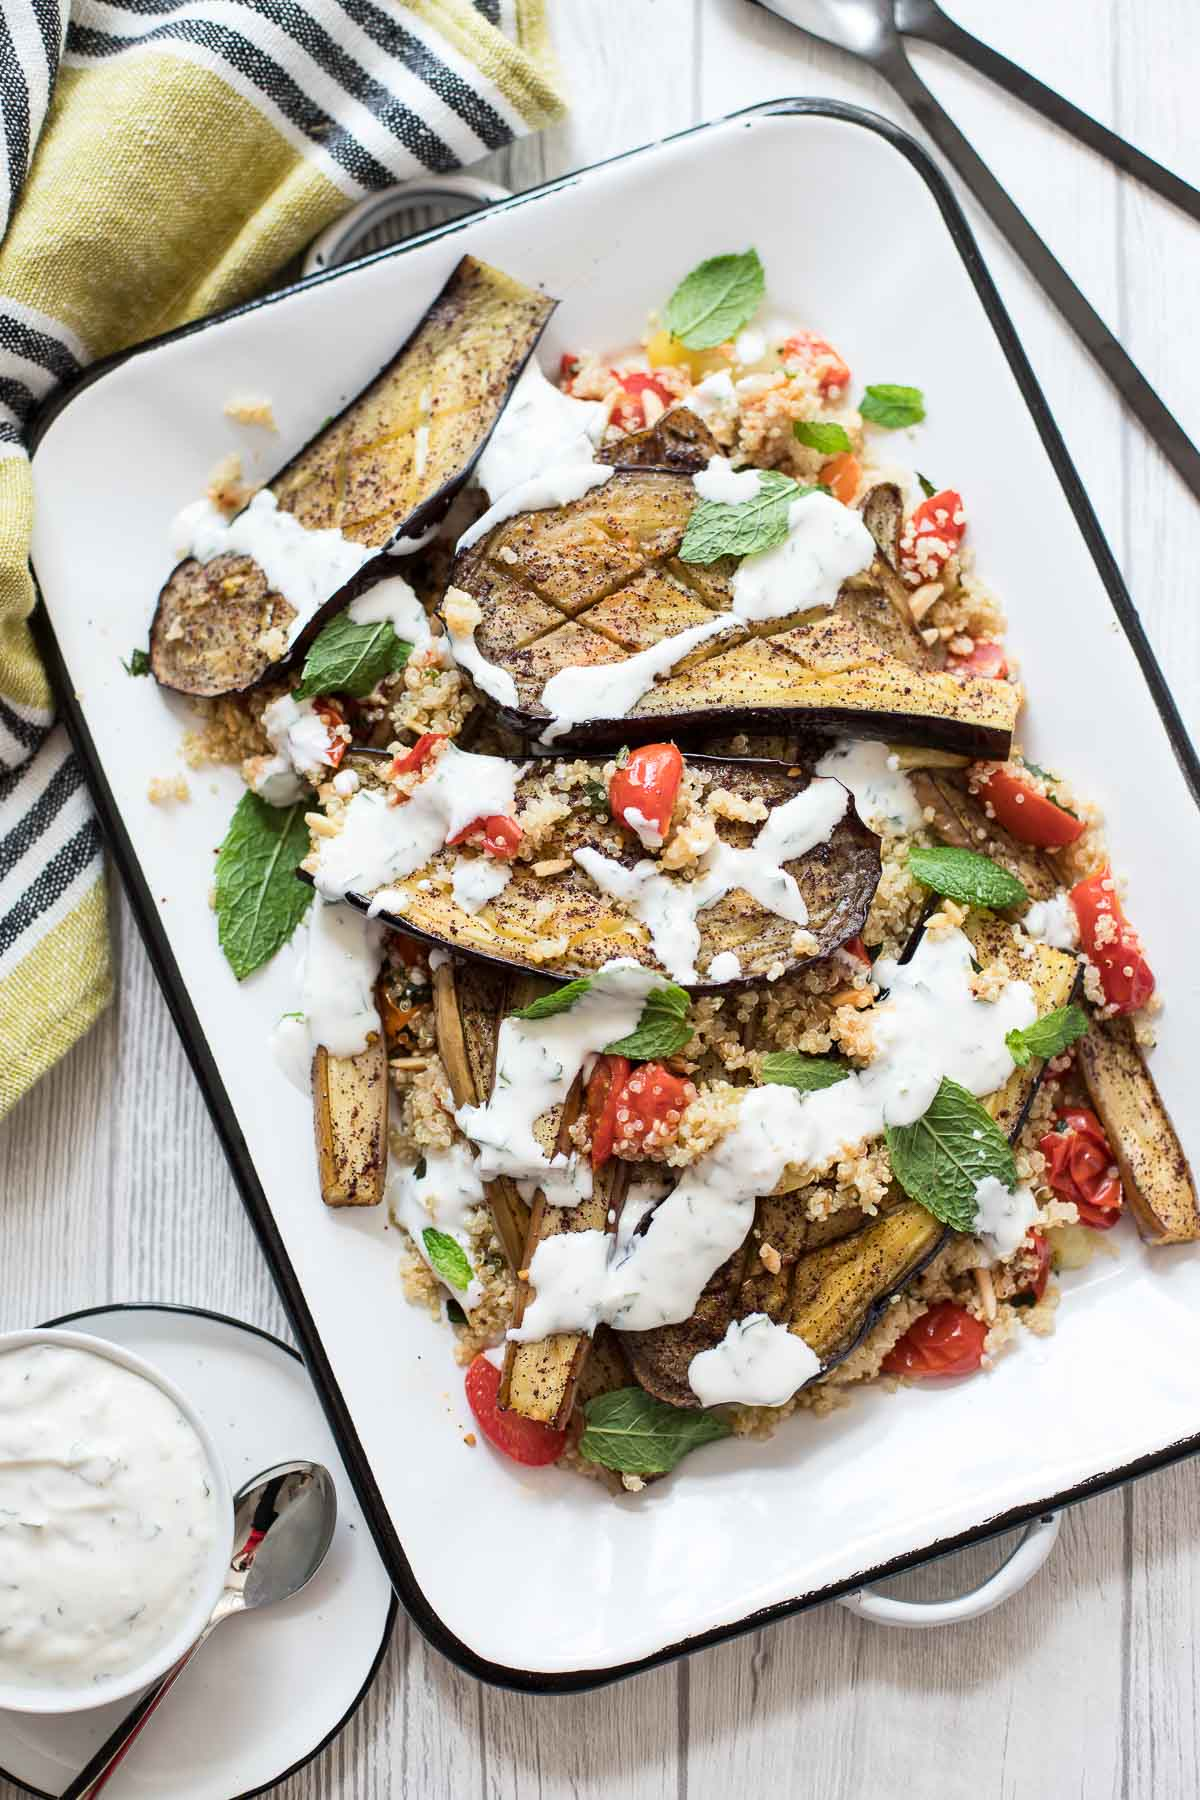 Sumac Roasted Eggplant and Tomatoes with Quinoa